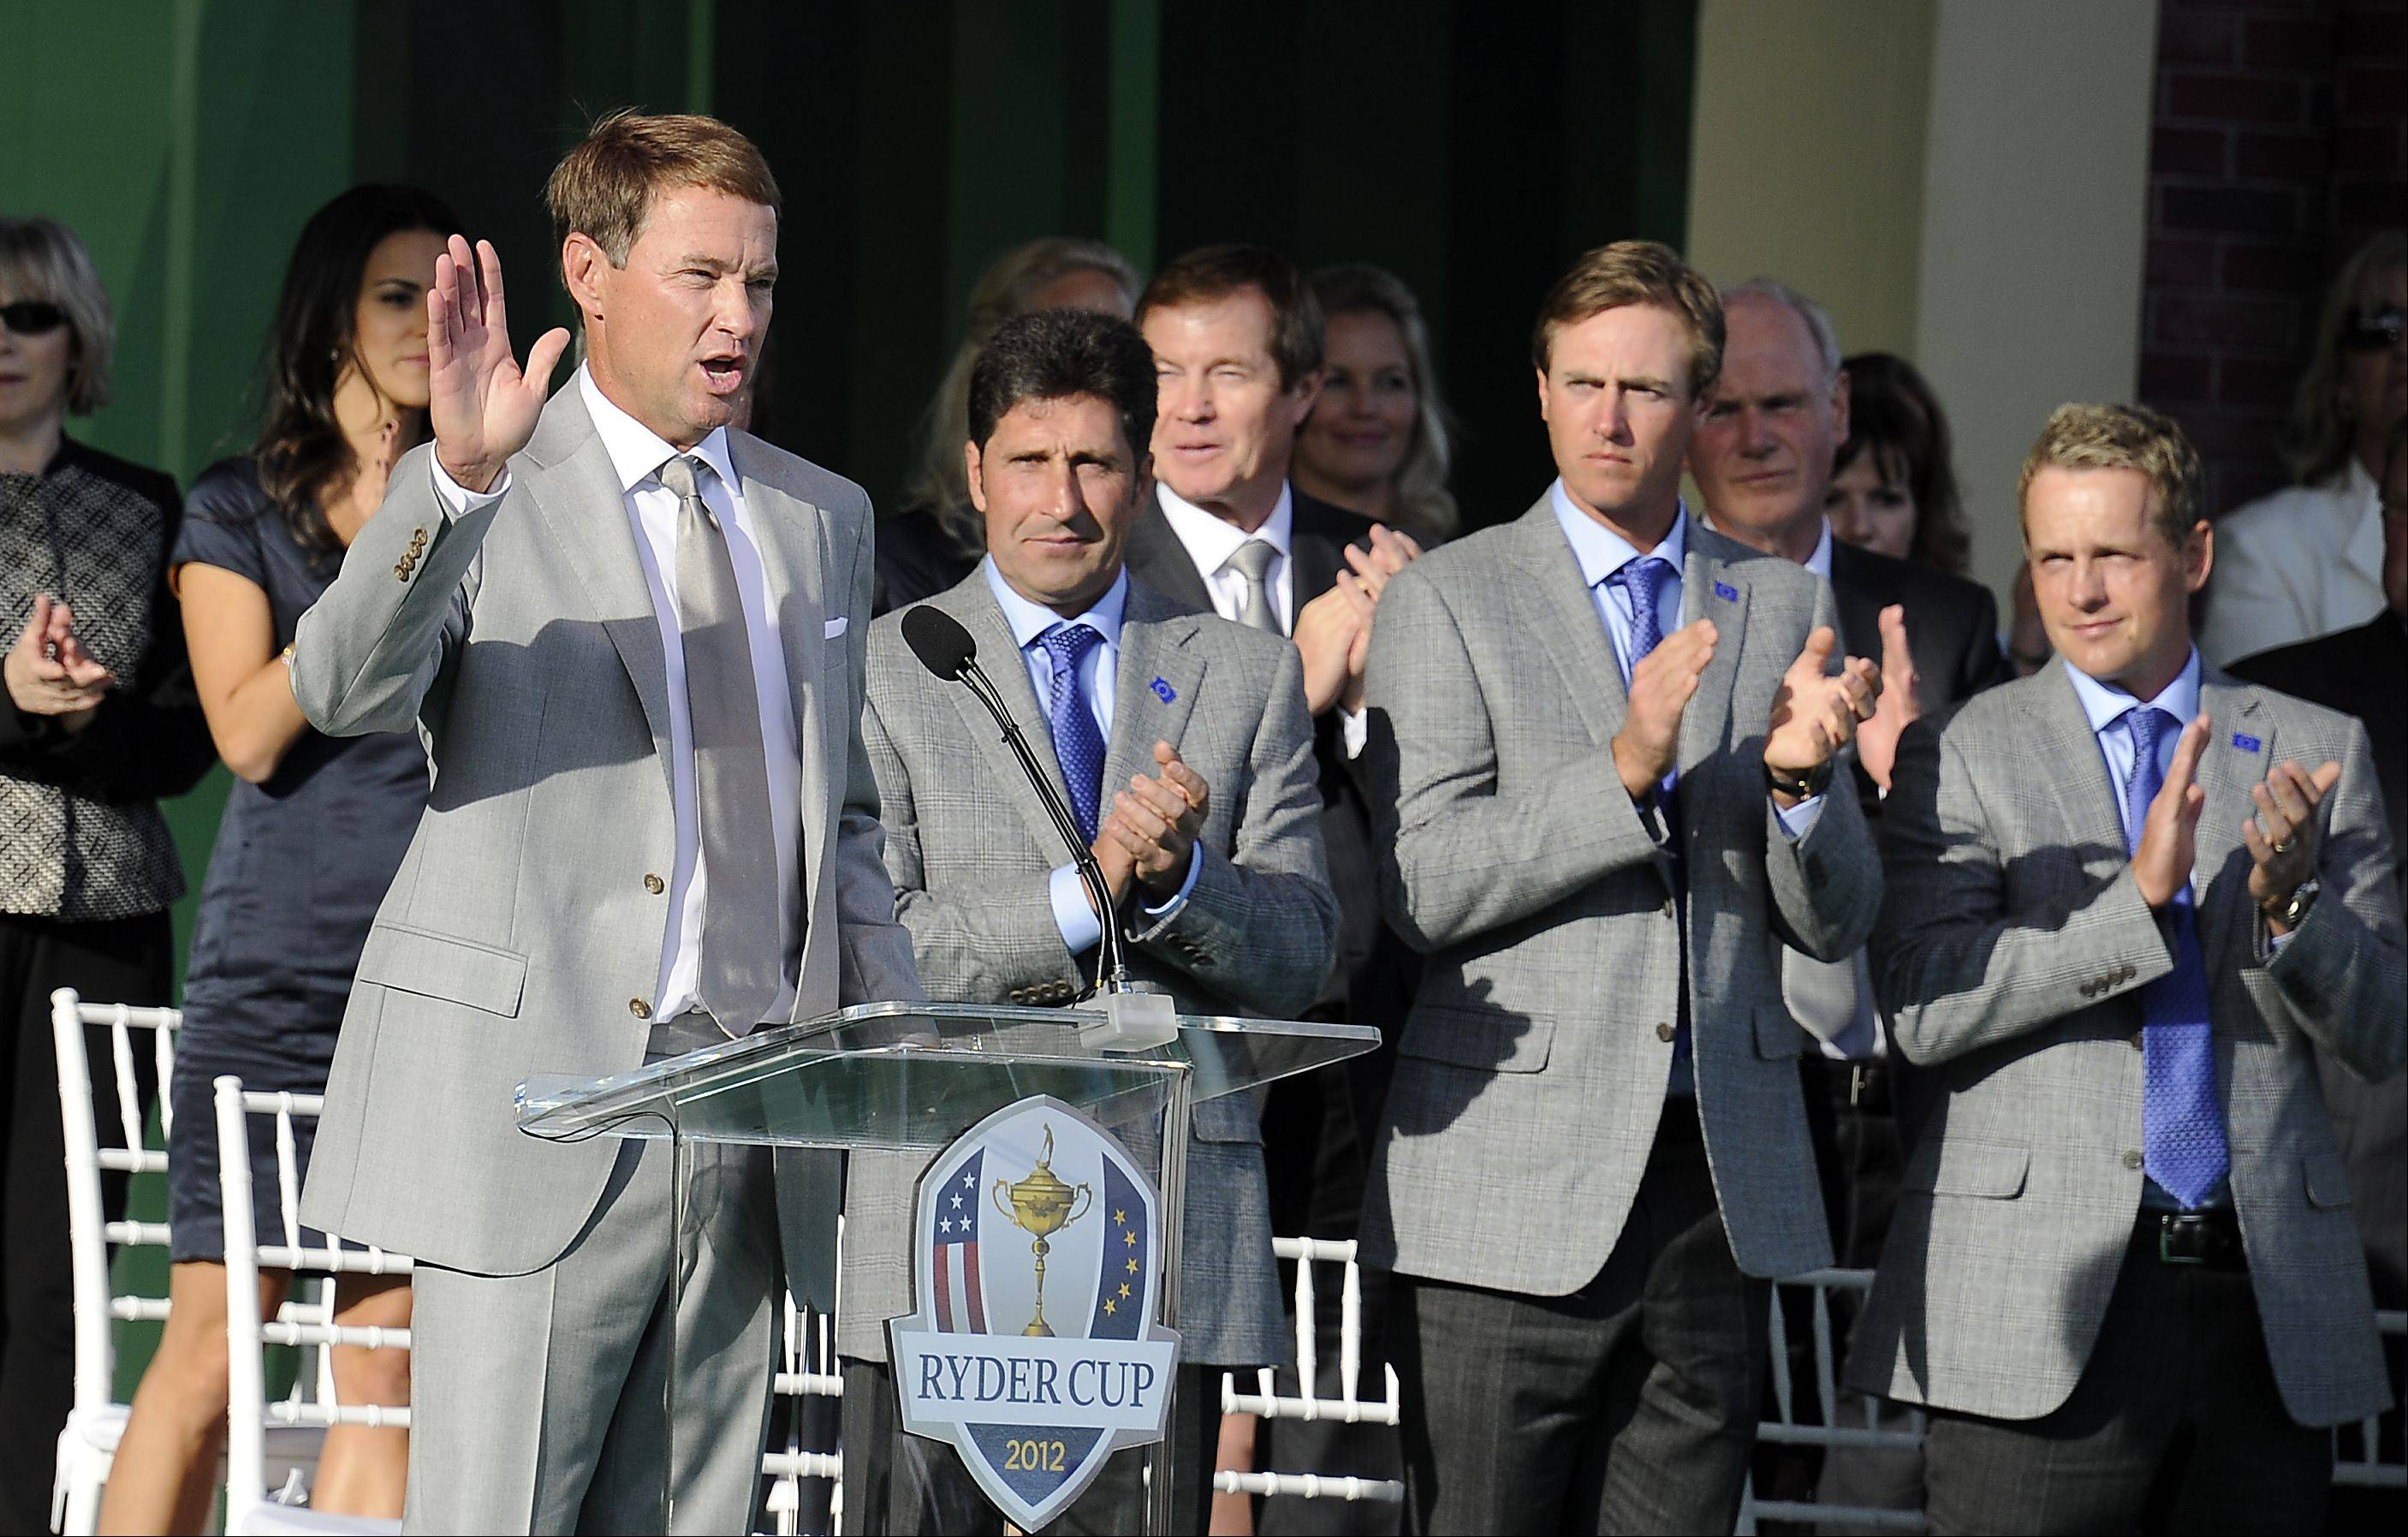 Davis Love III, captain of Team USA, speaks to the large crowd as Team Europe's captain Jose Maria Olazabal looks on with other members of the European team.